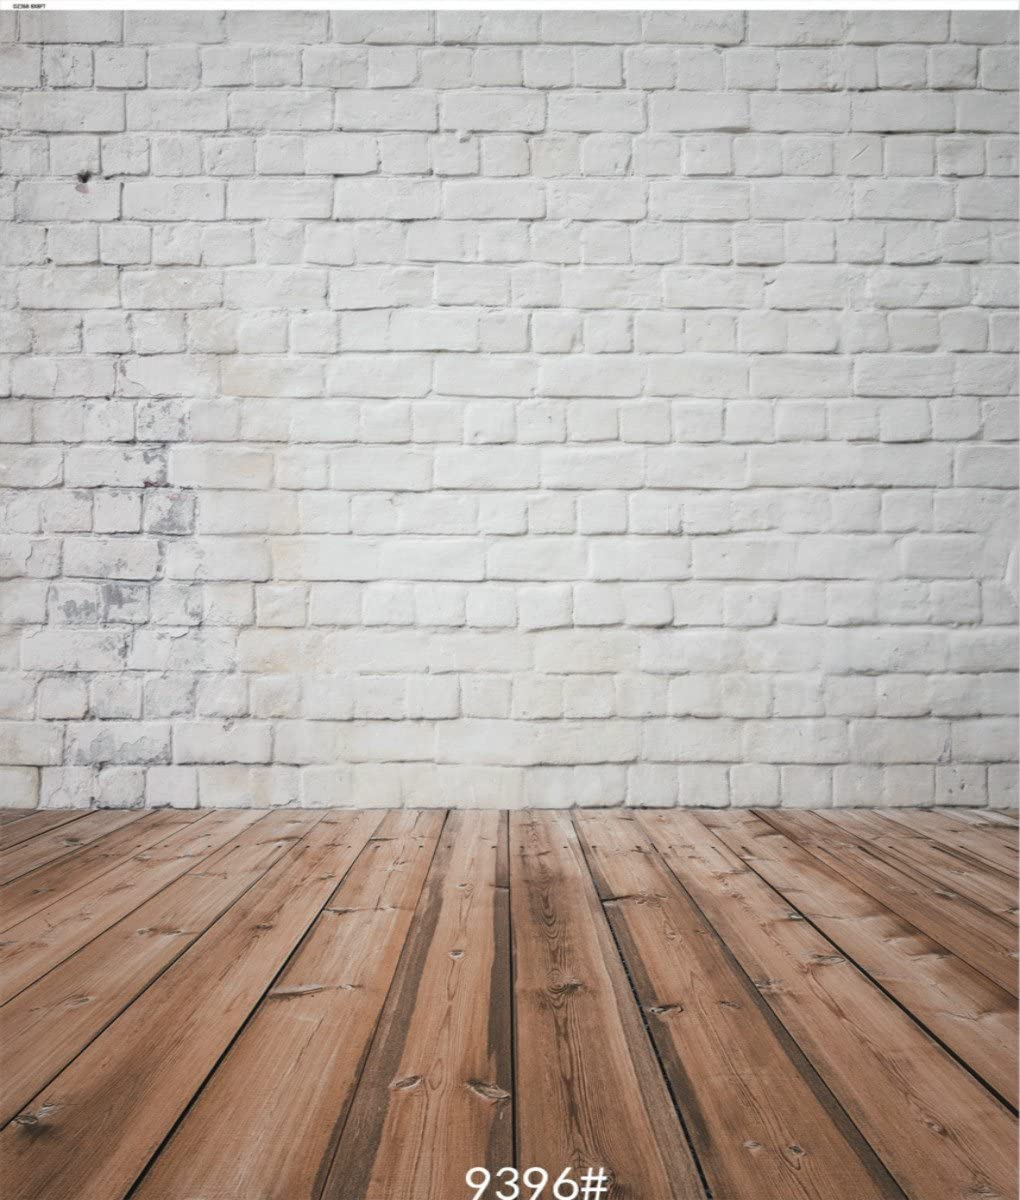 4X6FT-Retro White Brick Wall Photography Backdrops Brown Wood Floor Photo Studio Background